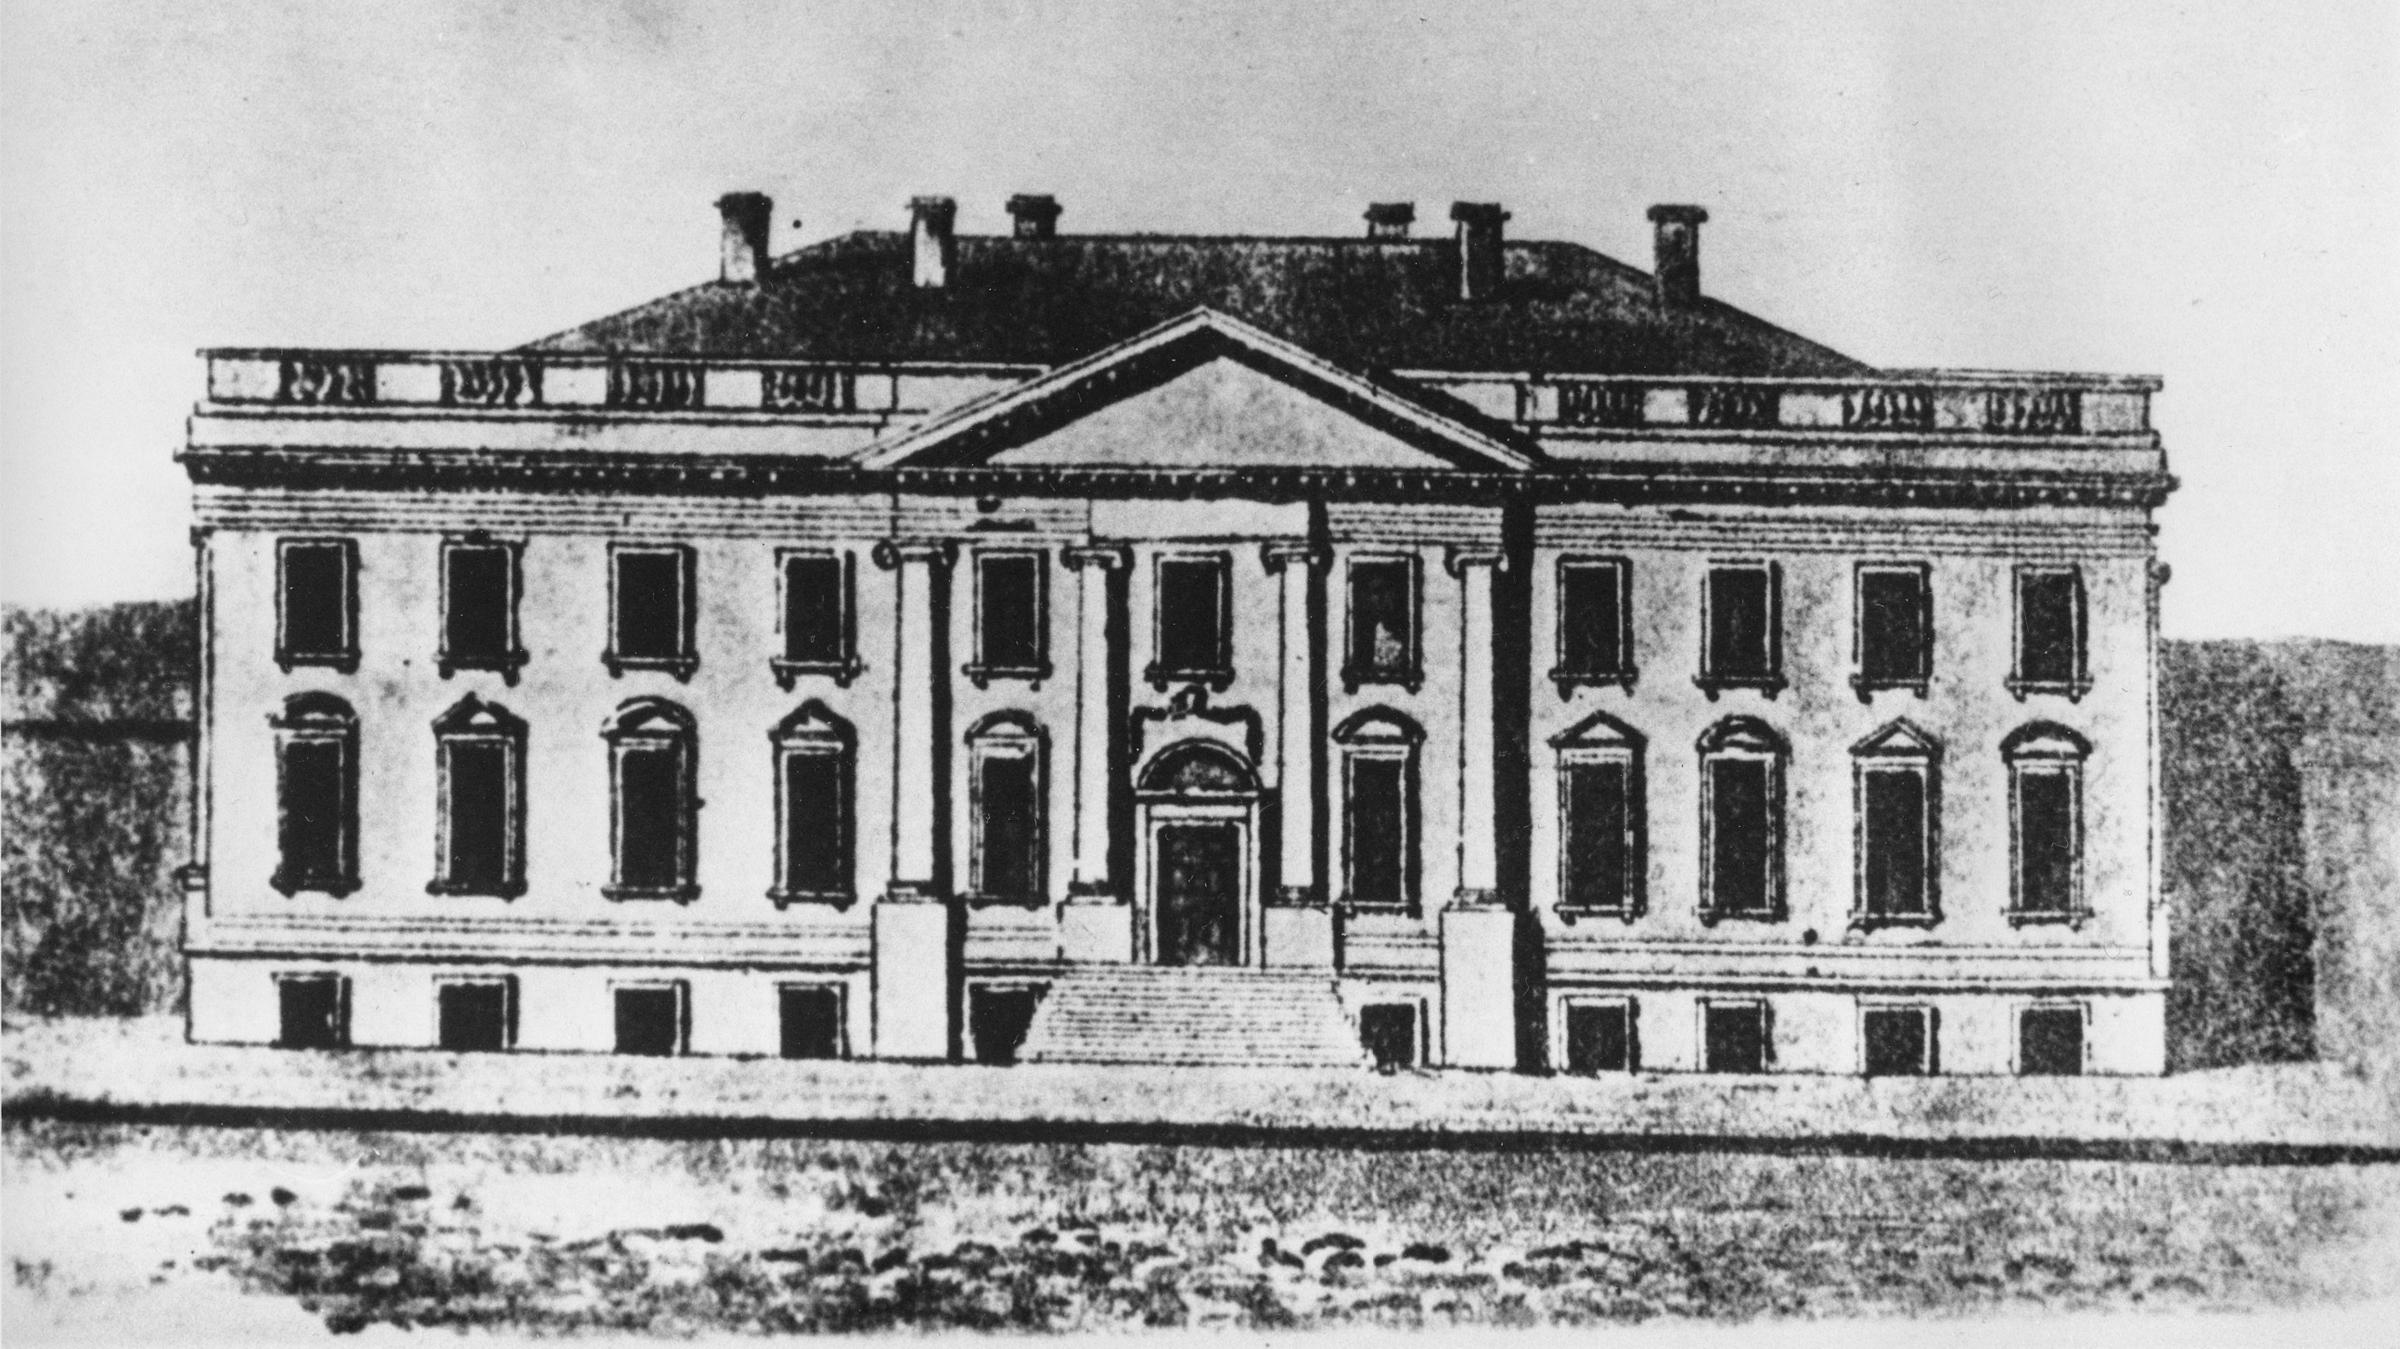 Slave Labor And The 'Longer History' Of The White House Boise